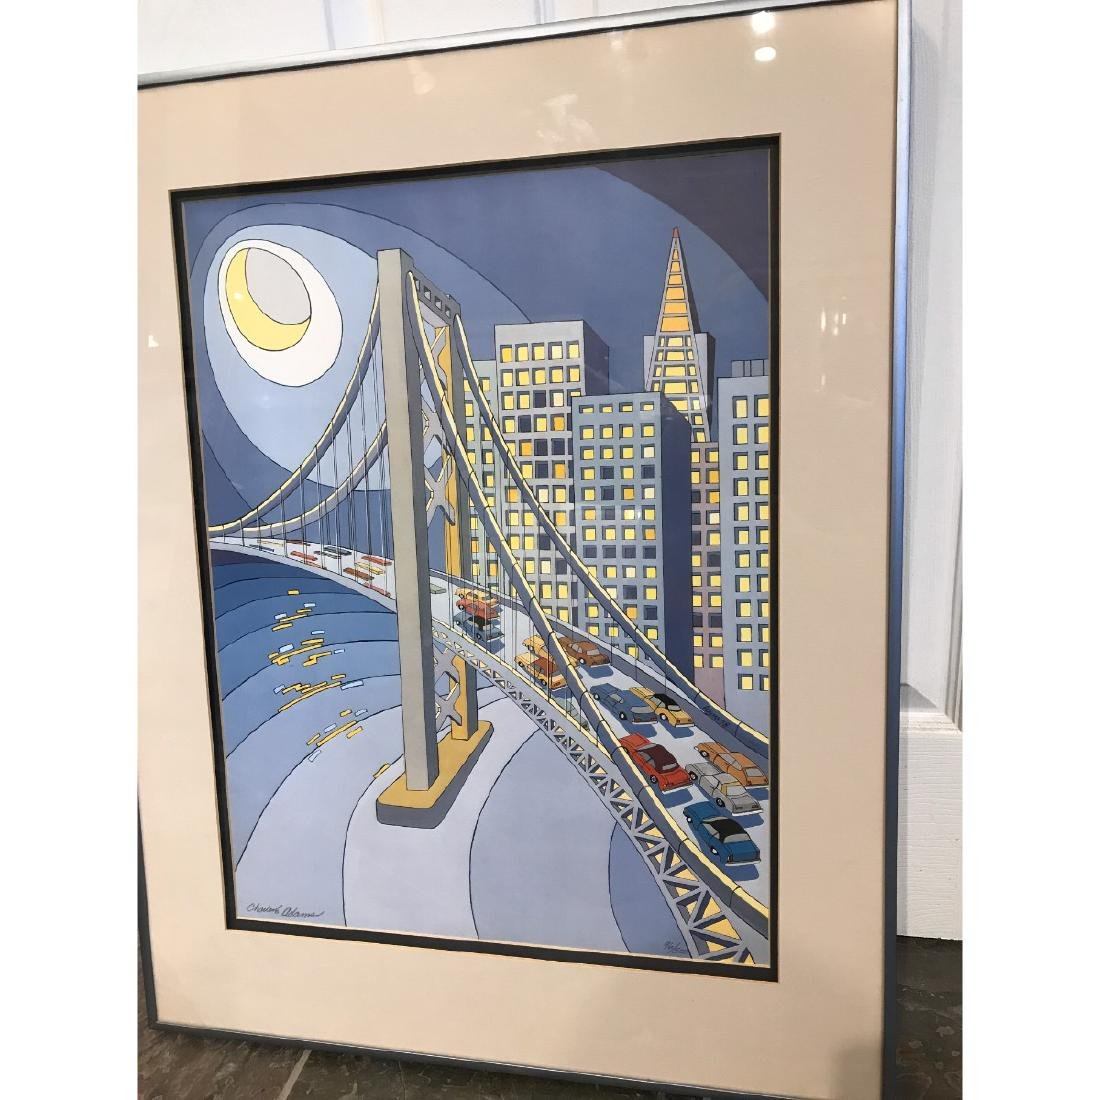 San Francisco Bridge Scene Lmd. Ed. Print by Charles